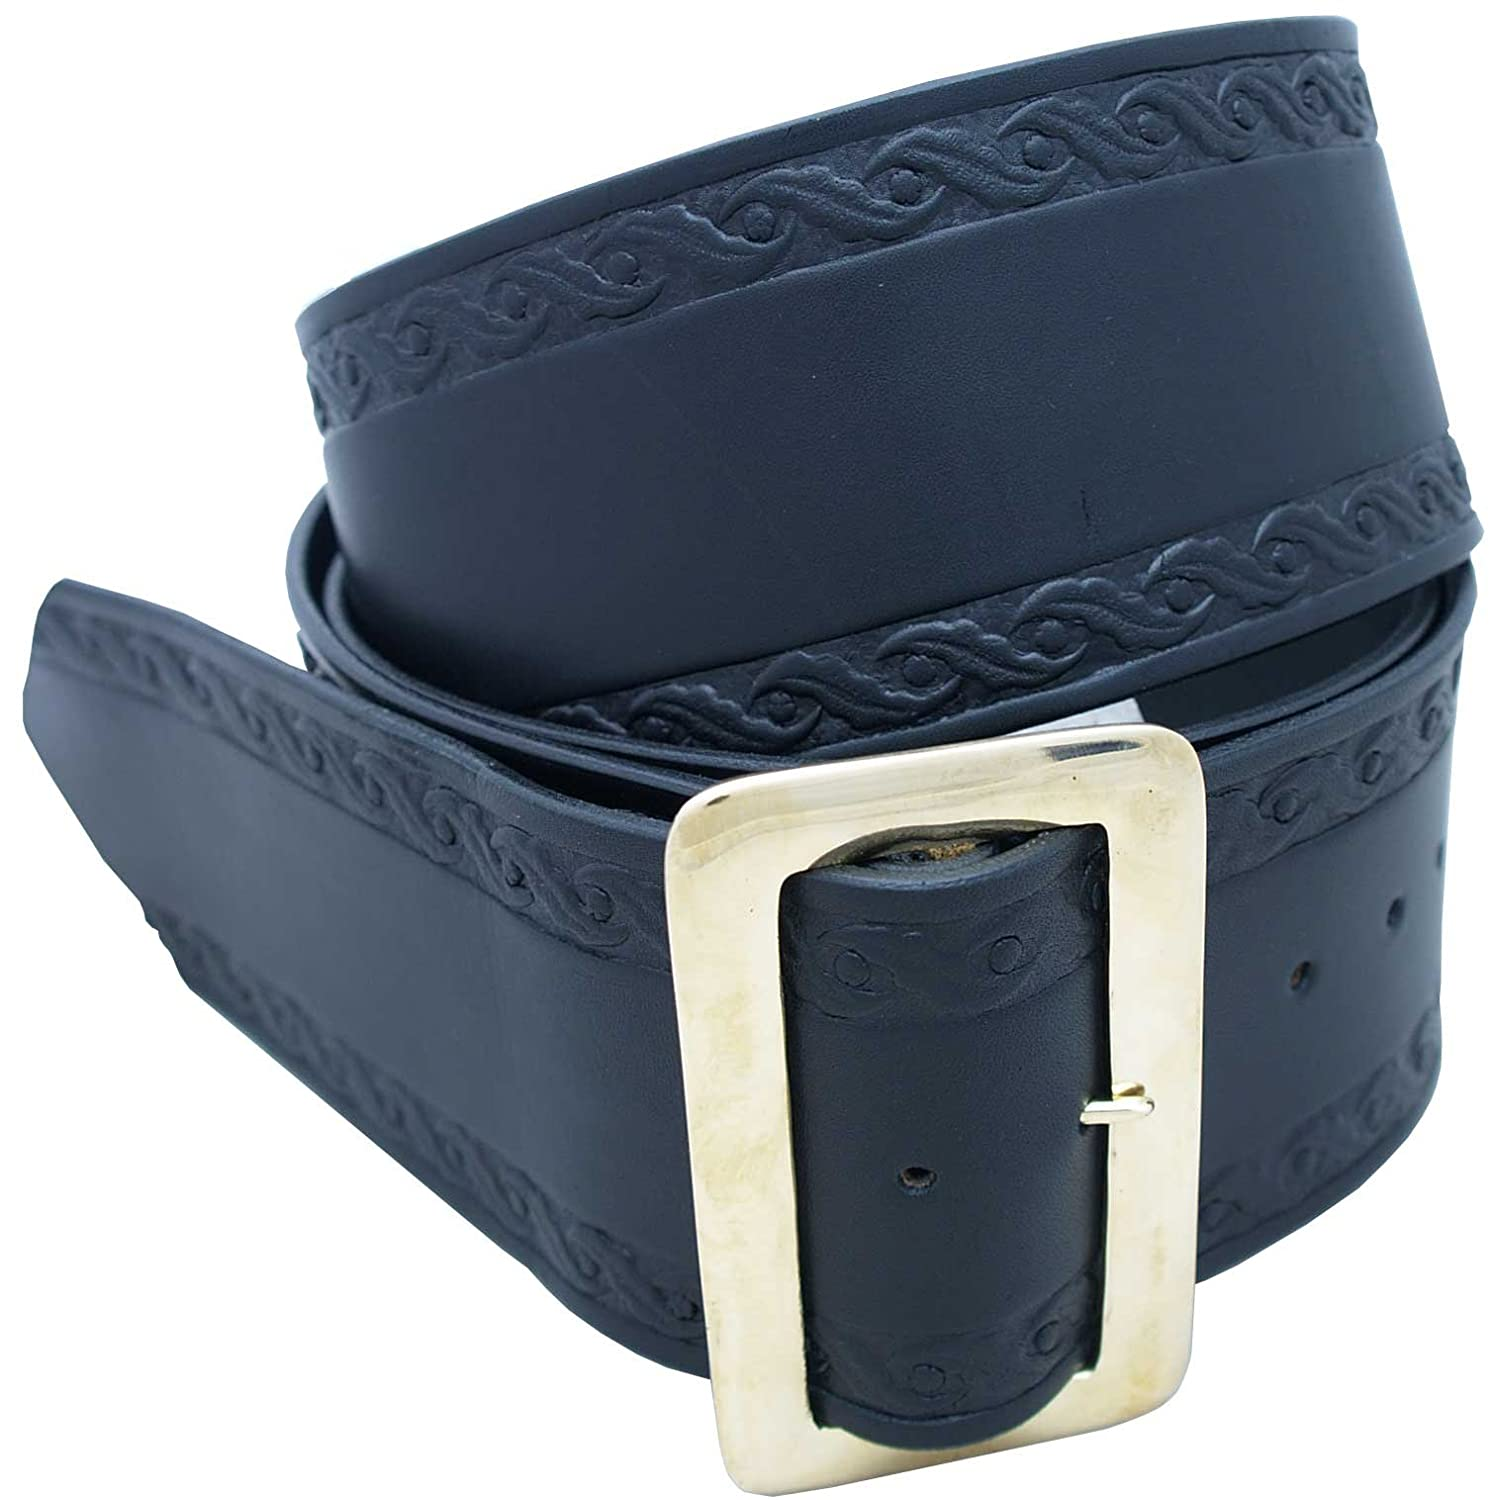 Adult Santa Embossed Holly Leaf Design Black Leather Belt - DeluxeAdultCostumes.com